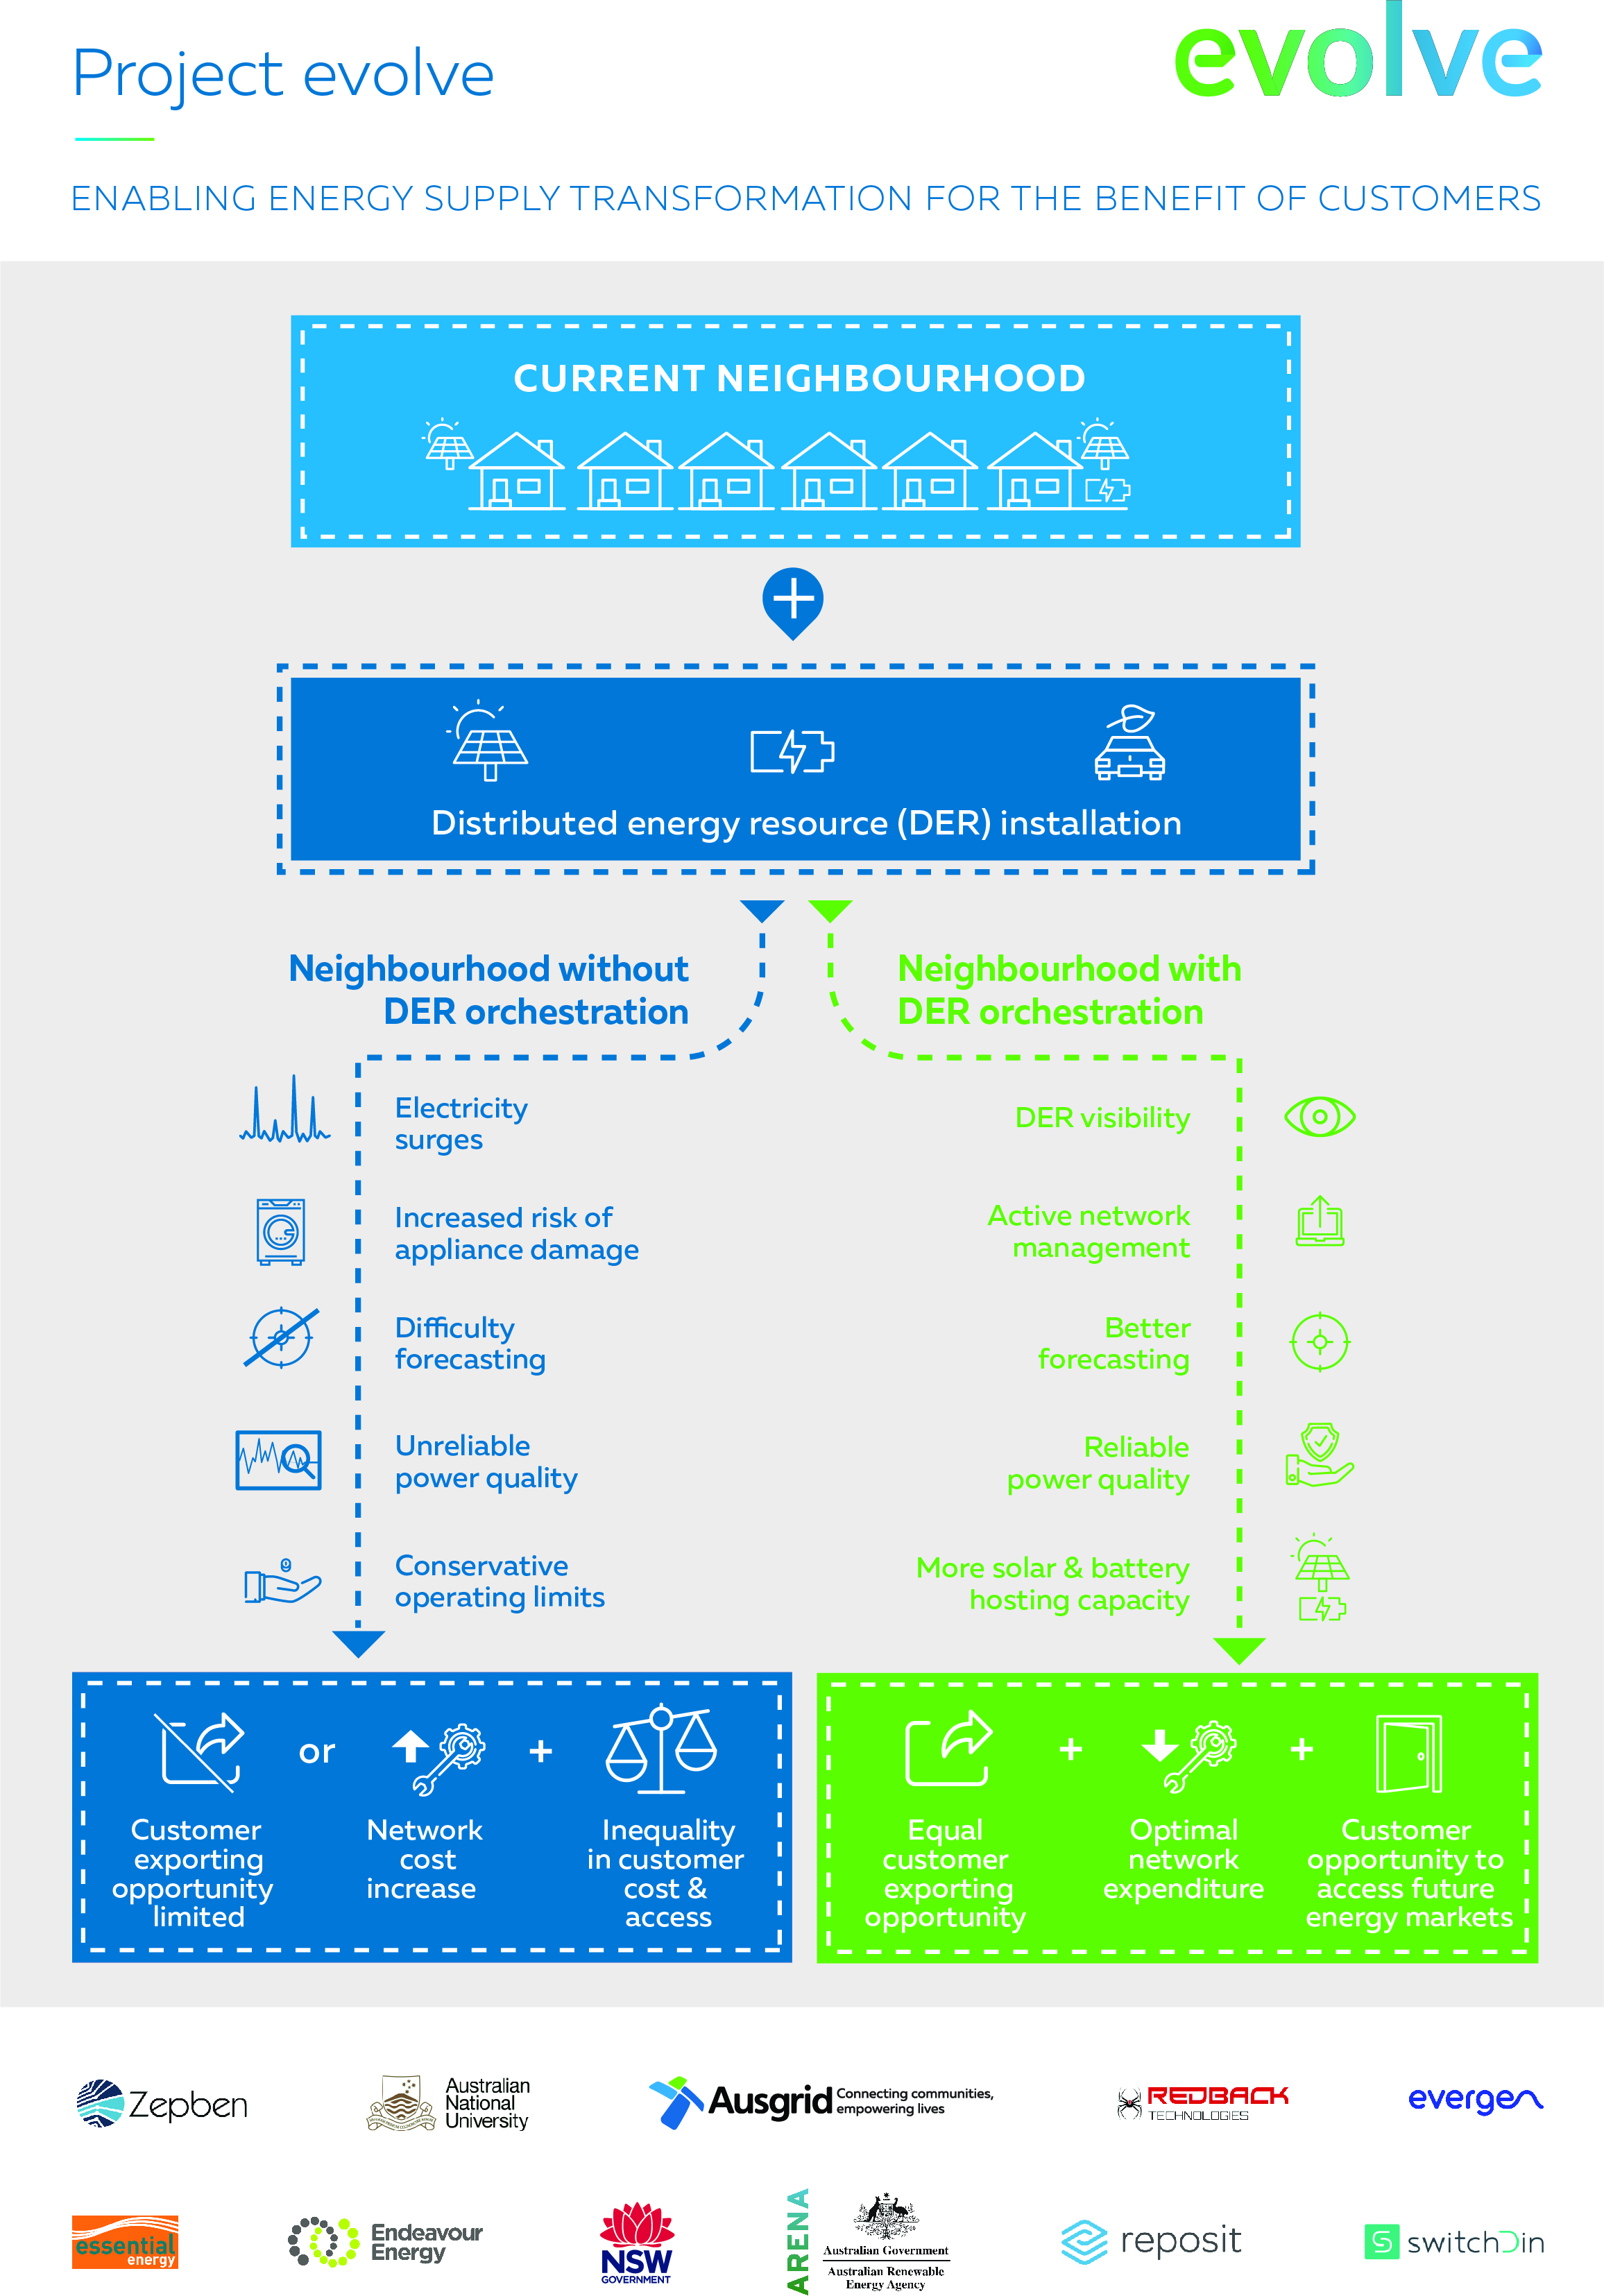 Infographic showing how a Distributed Energy Resource installation (DER) can benefit customers